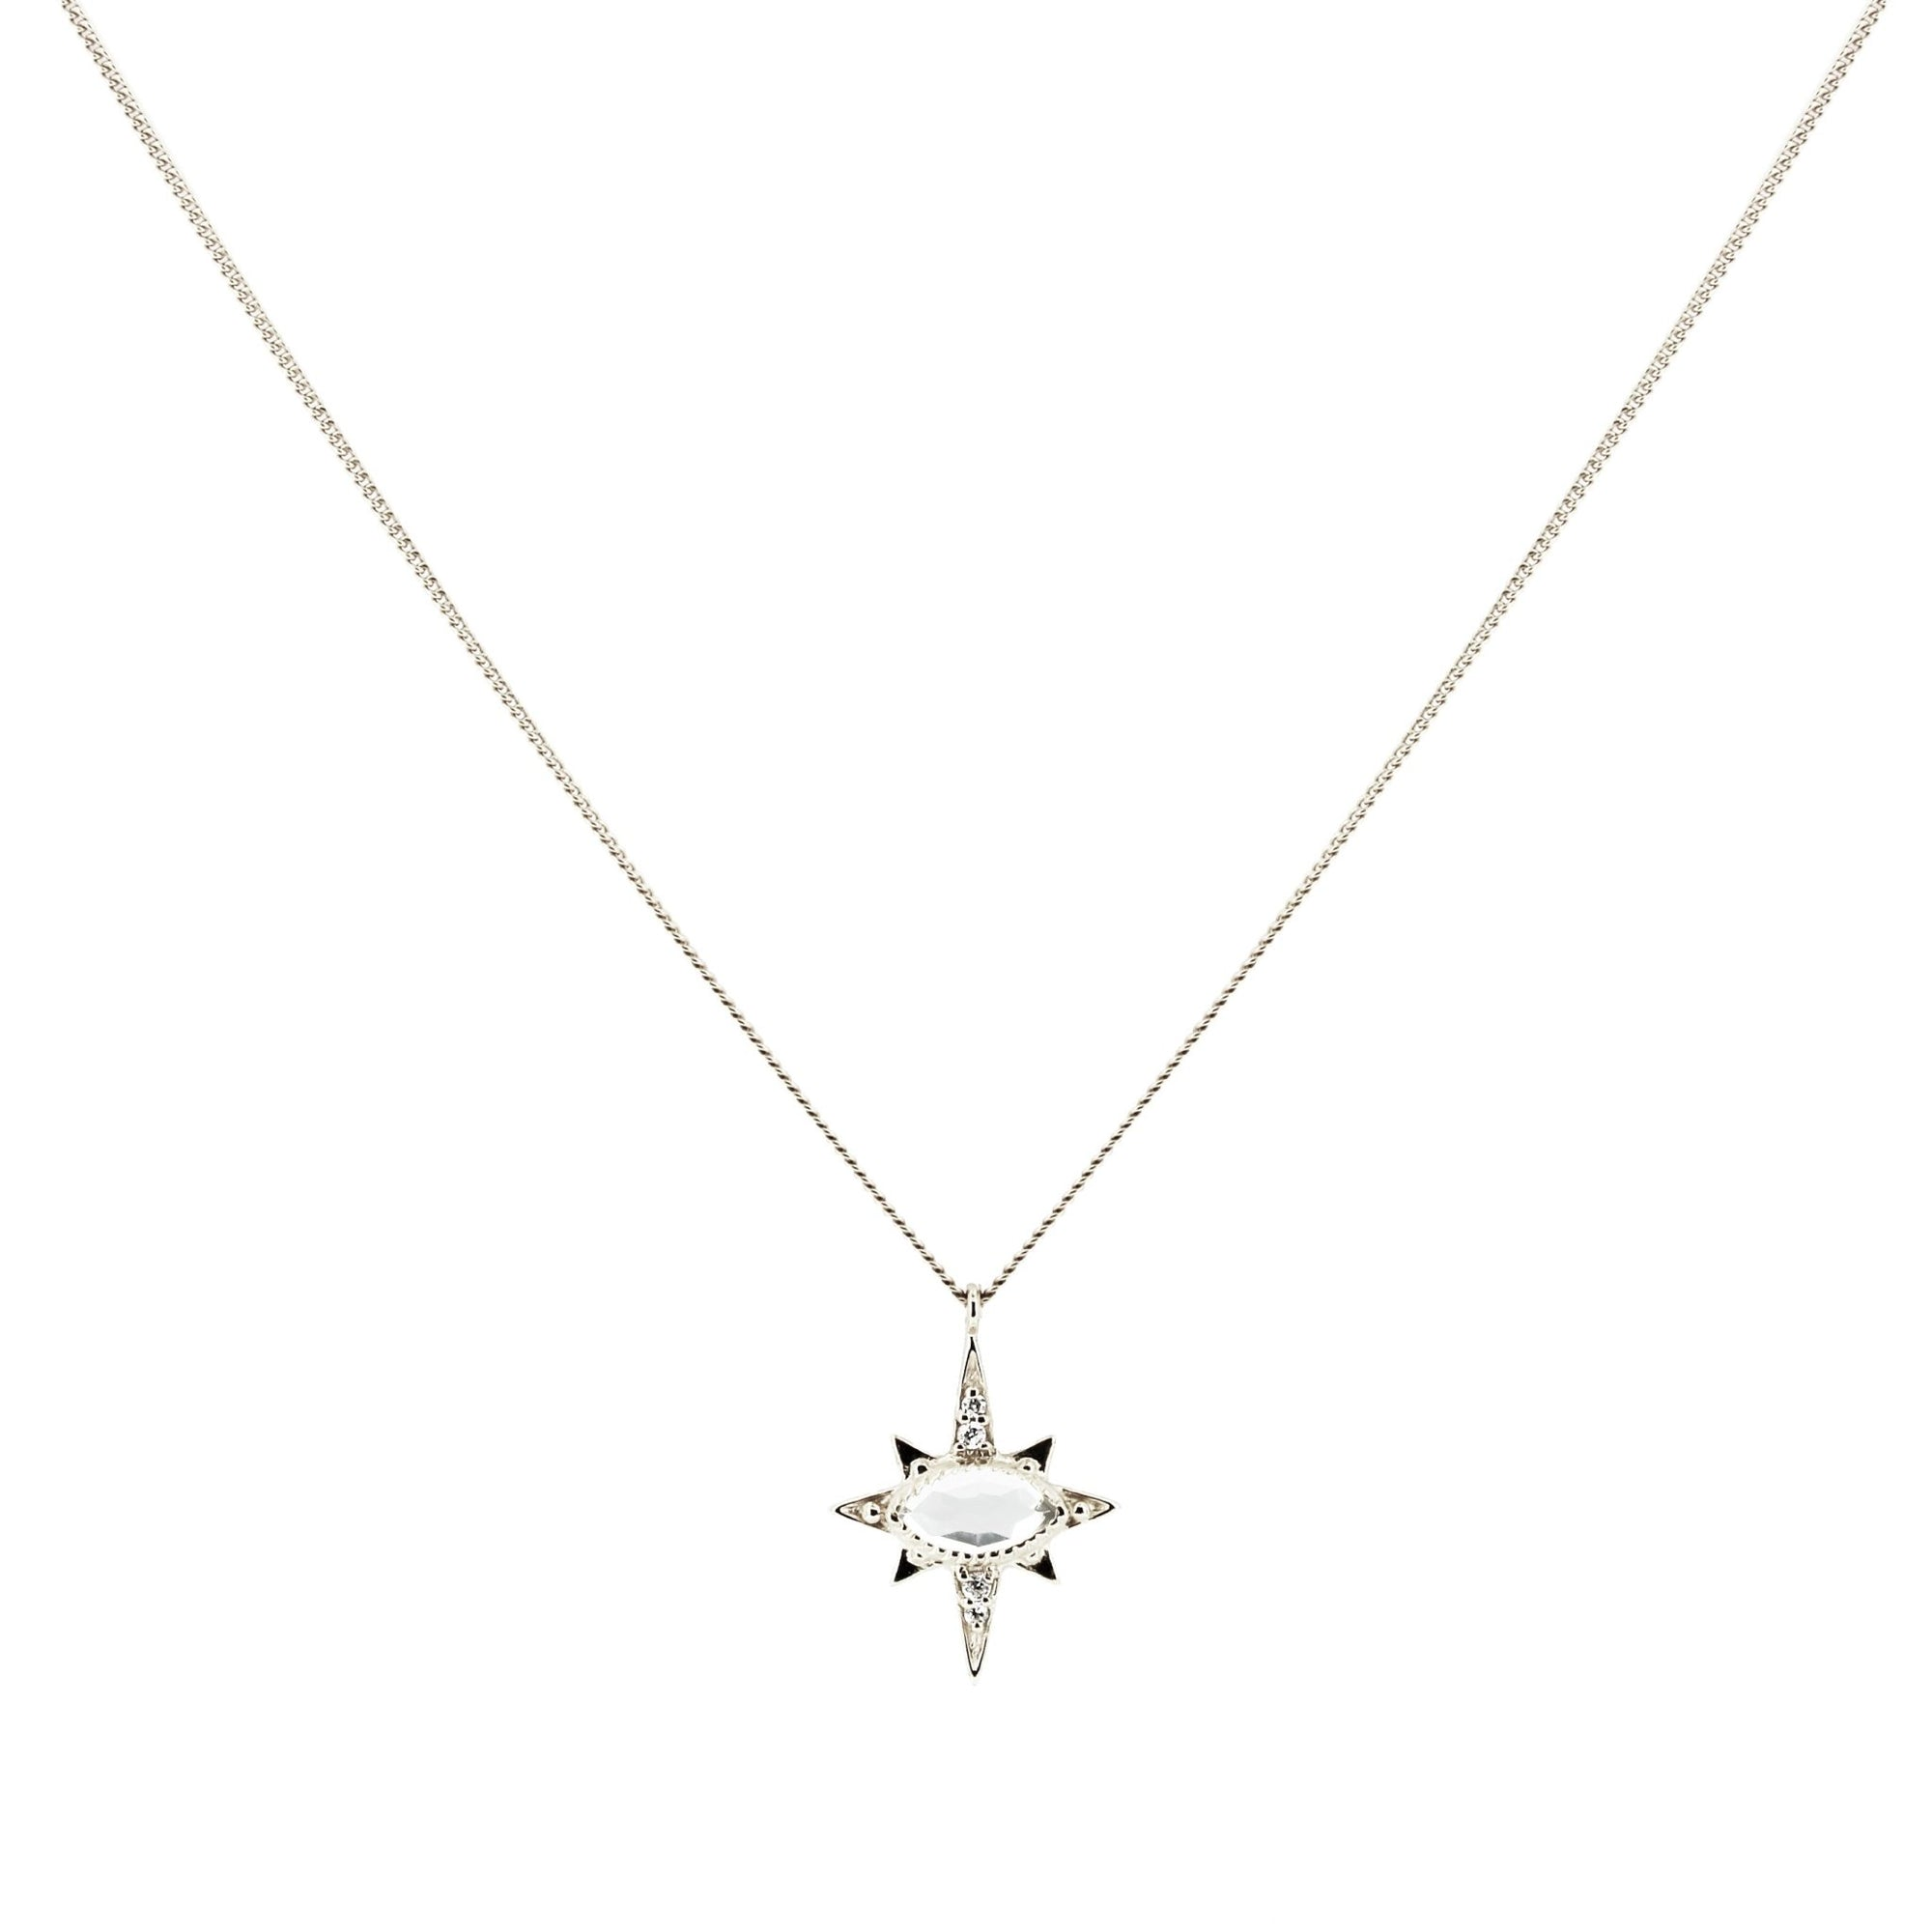 MINI IMAGINE PENDANT NECKLACE - WHITE TOPAZ, CUBIC ZIRCONIA & SILVER - SO PRETTY CARA COTTER